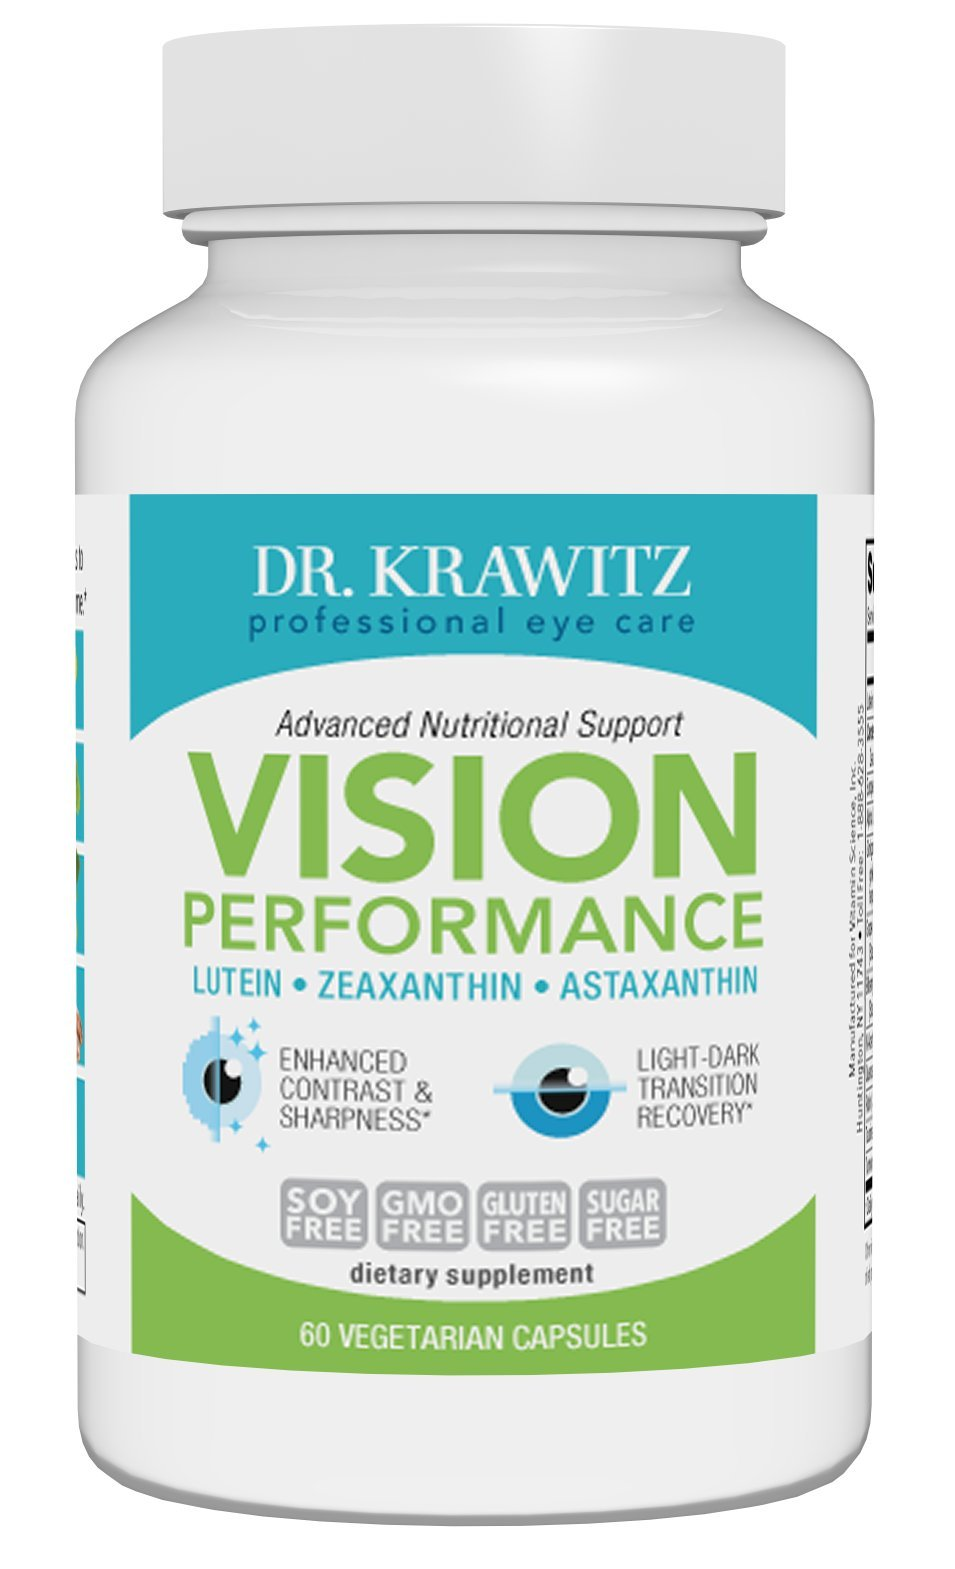 Dr. Krawitz Vision Performance with Lutein, Zeaxanthin & Astaxanthin - 60 caps by Dr. Krawitz Professional Eye Care Supplements (Image #2)